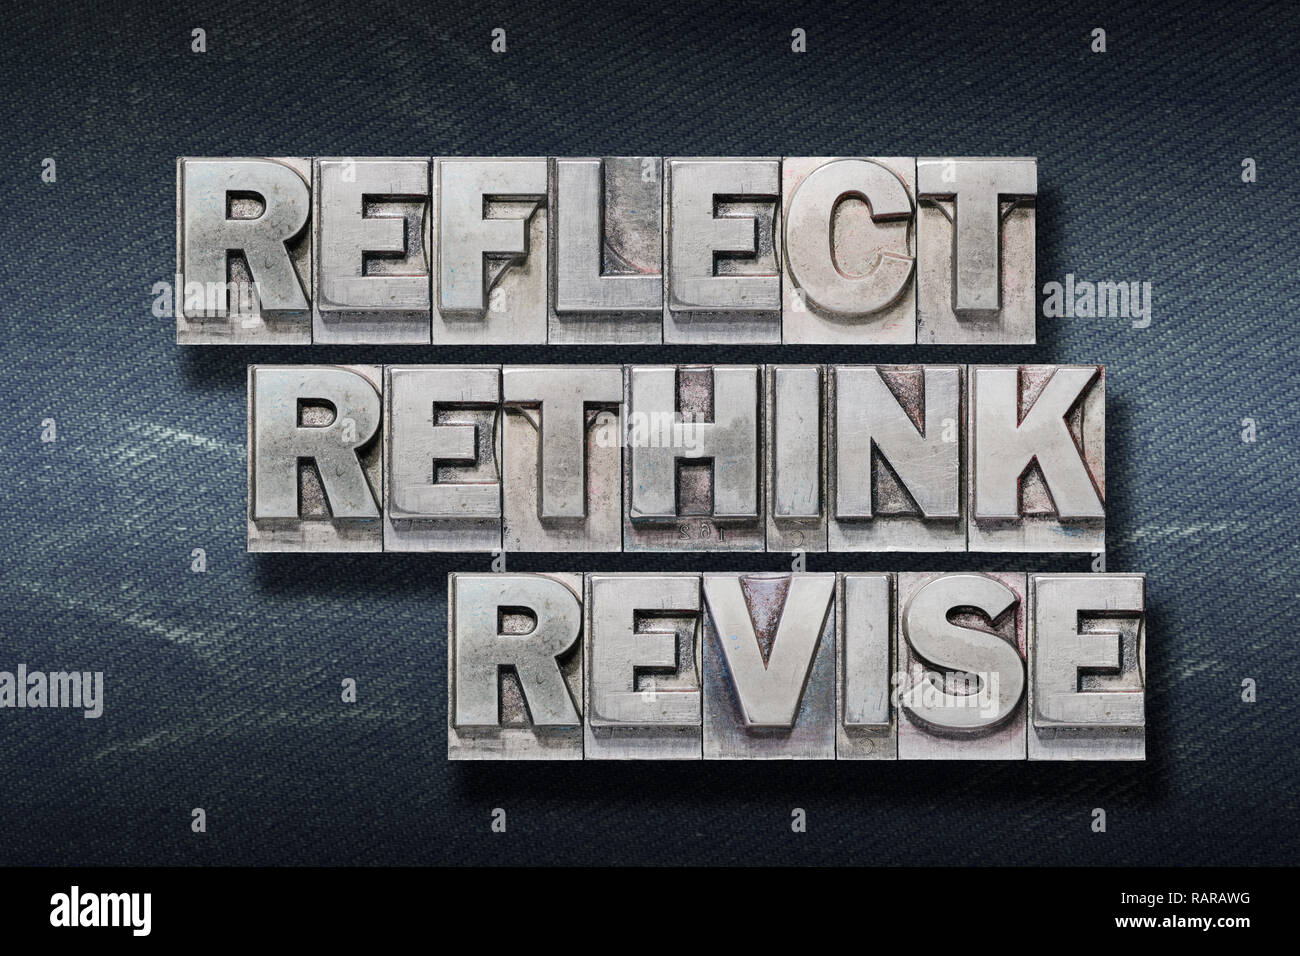 reflect rethink revise words made from metallic letterpress on dark jeans background - Stock Image